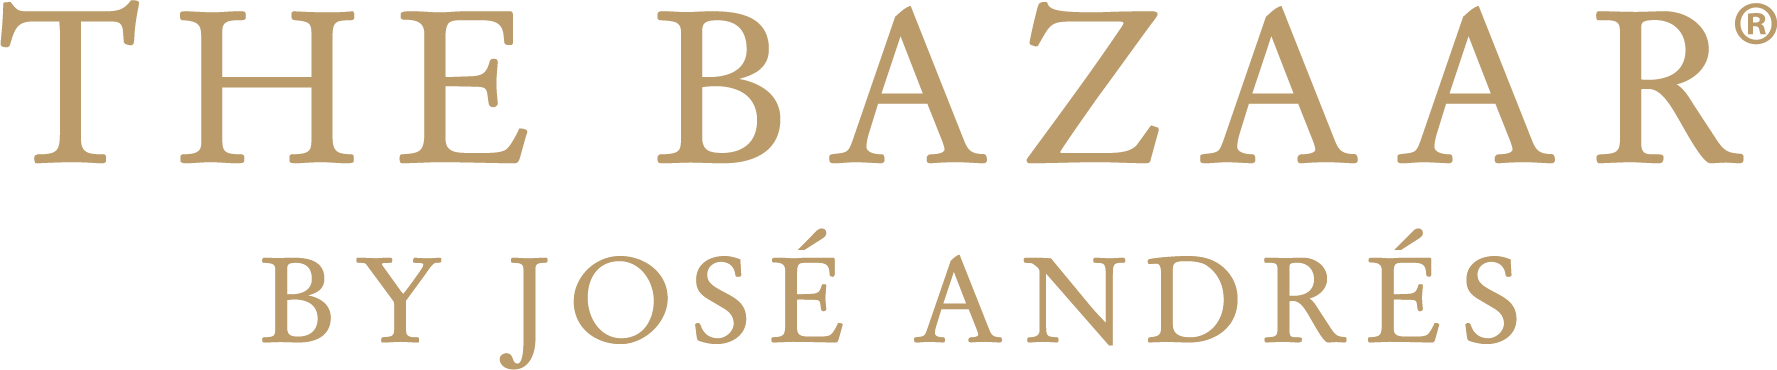 The Bazaar Home